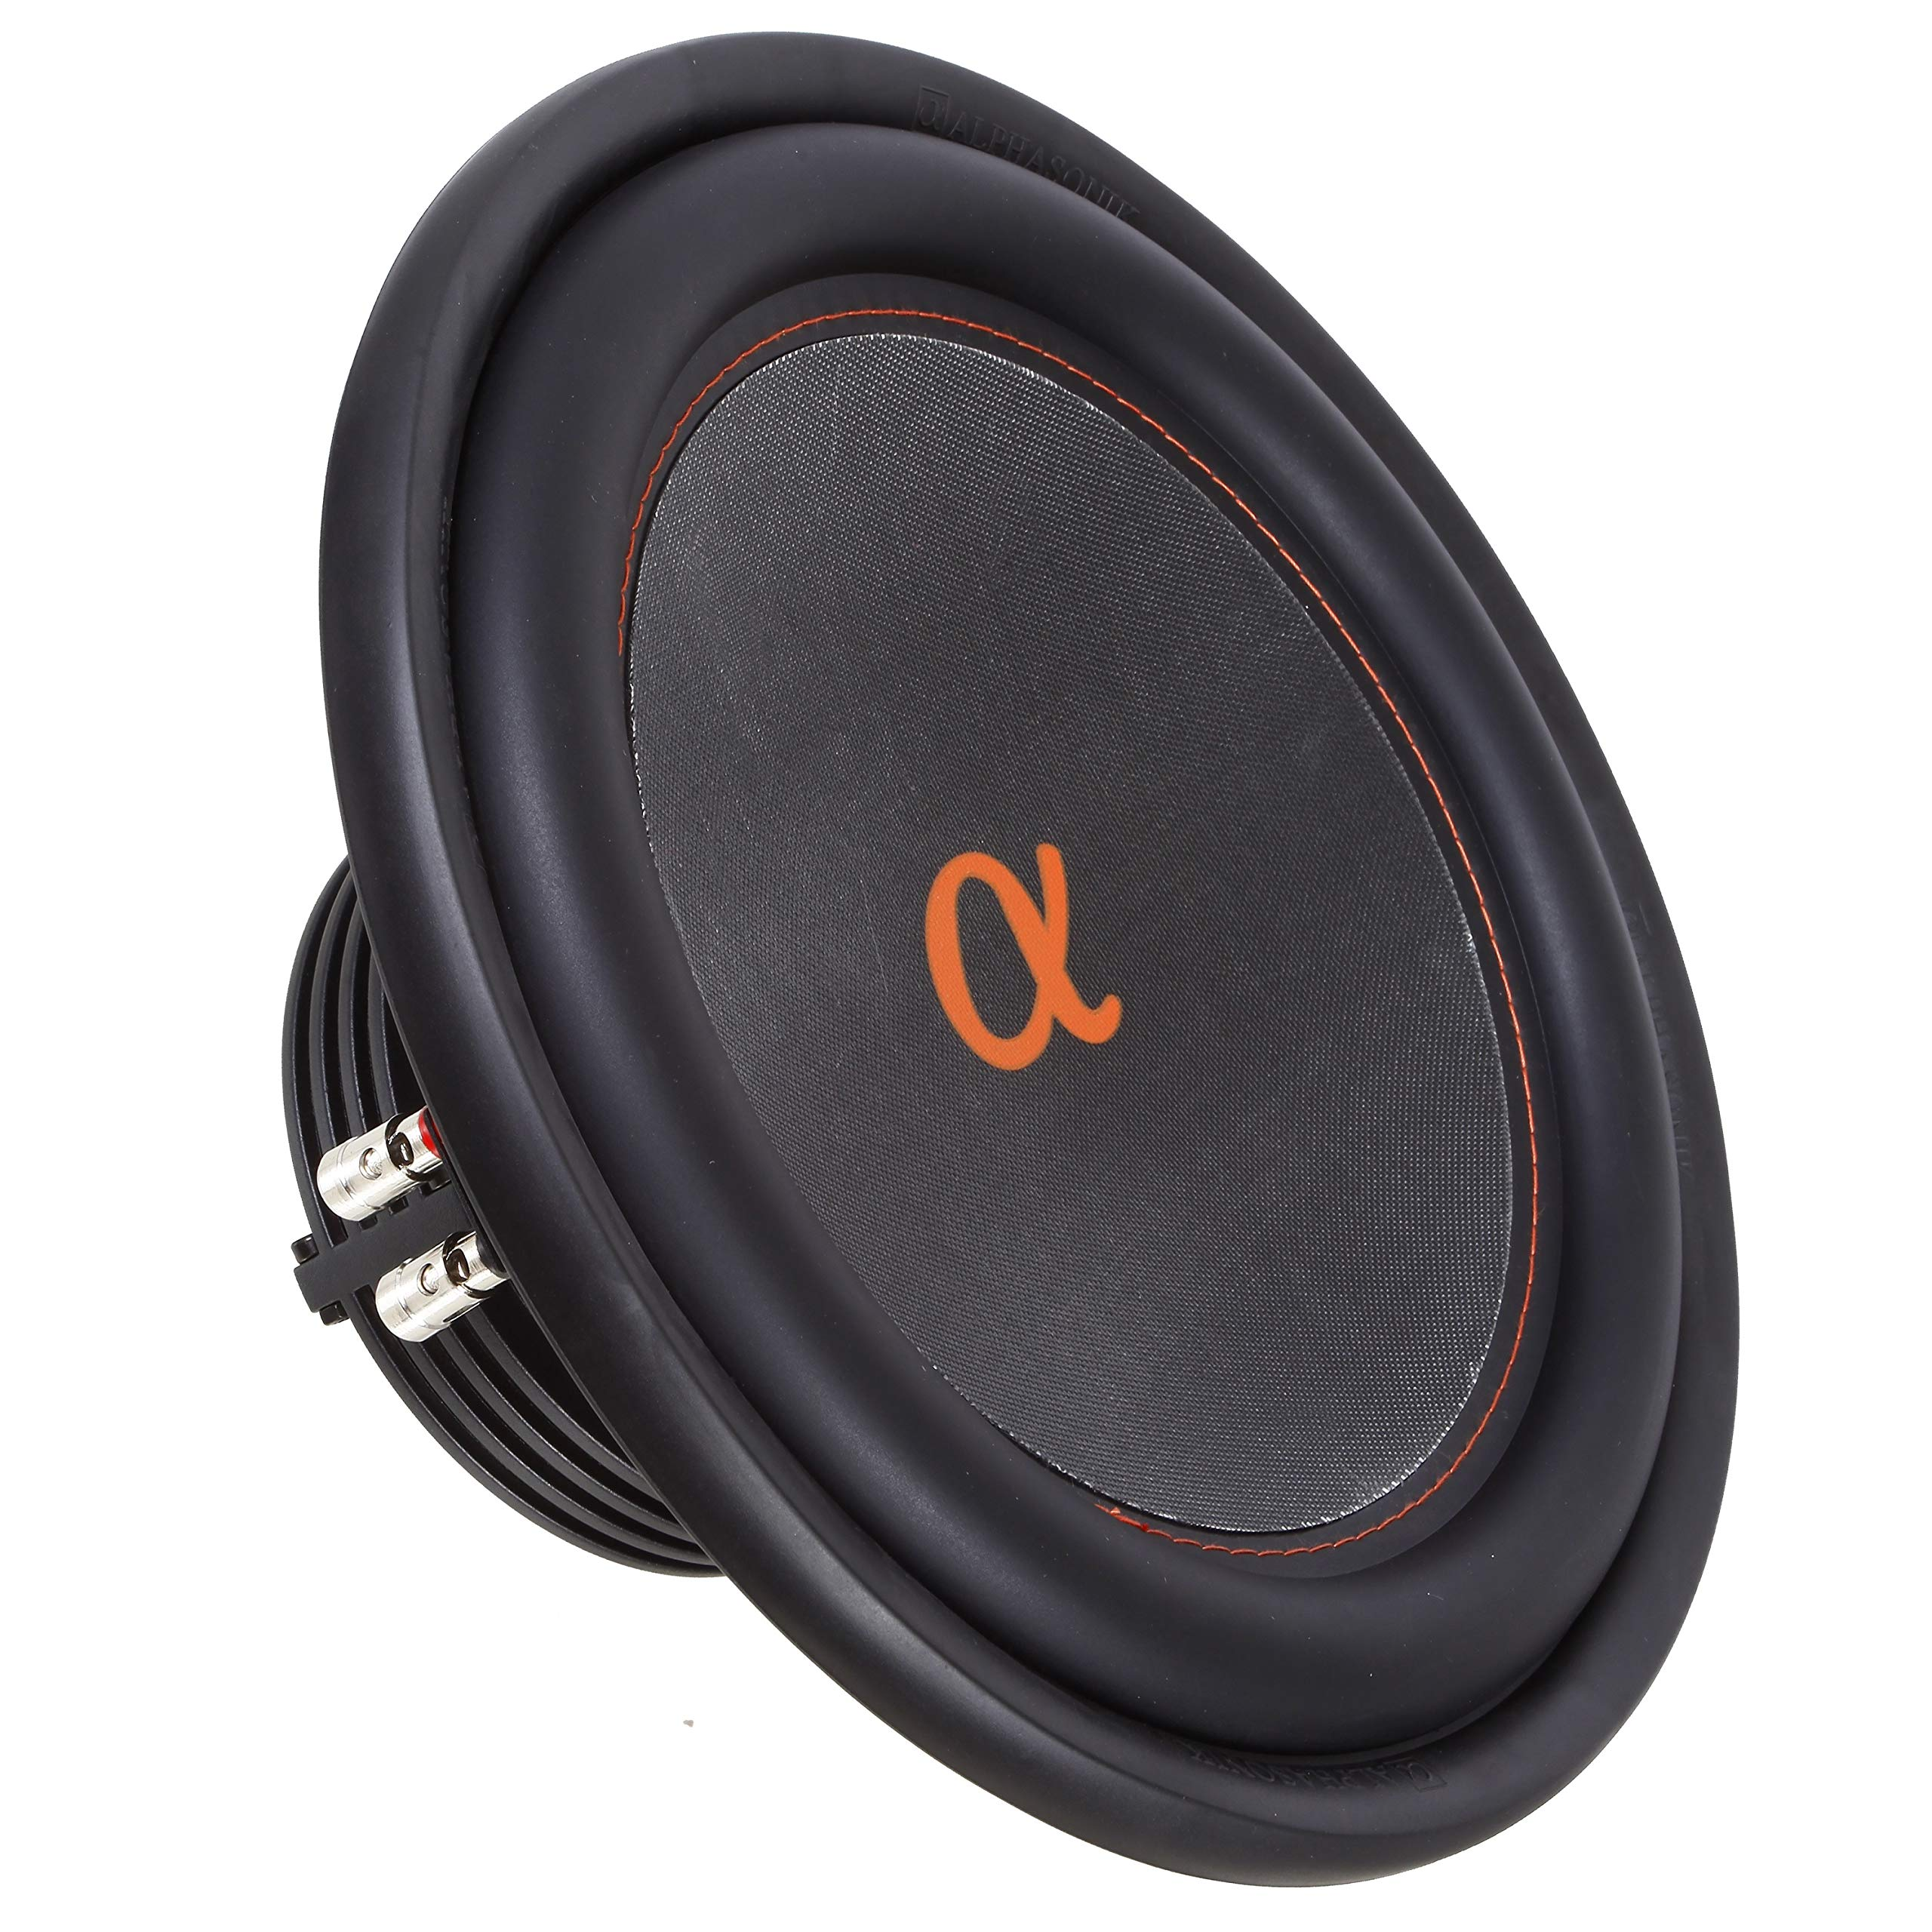 """Alphasonik NSW412 Neuron 400 Series 12"""" 1500 Watts Max / 500 Watts RMS Dual 4 Ohm Car Subwoofer w/ High Grade Magnet Non Pressed Paper Carbon Stitched Cone Cooling Rings System Speaker Bass Sub Woofer"""